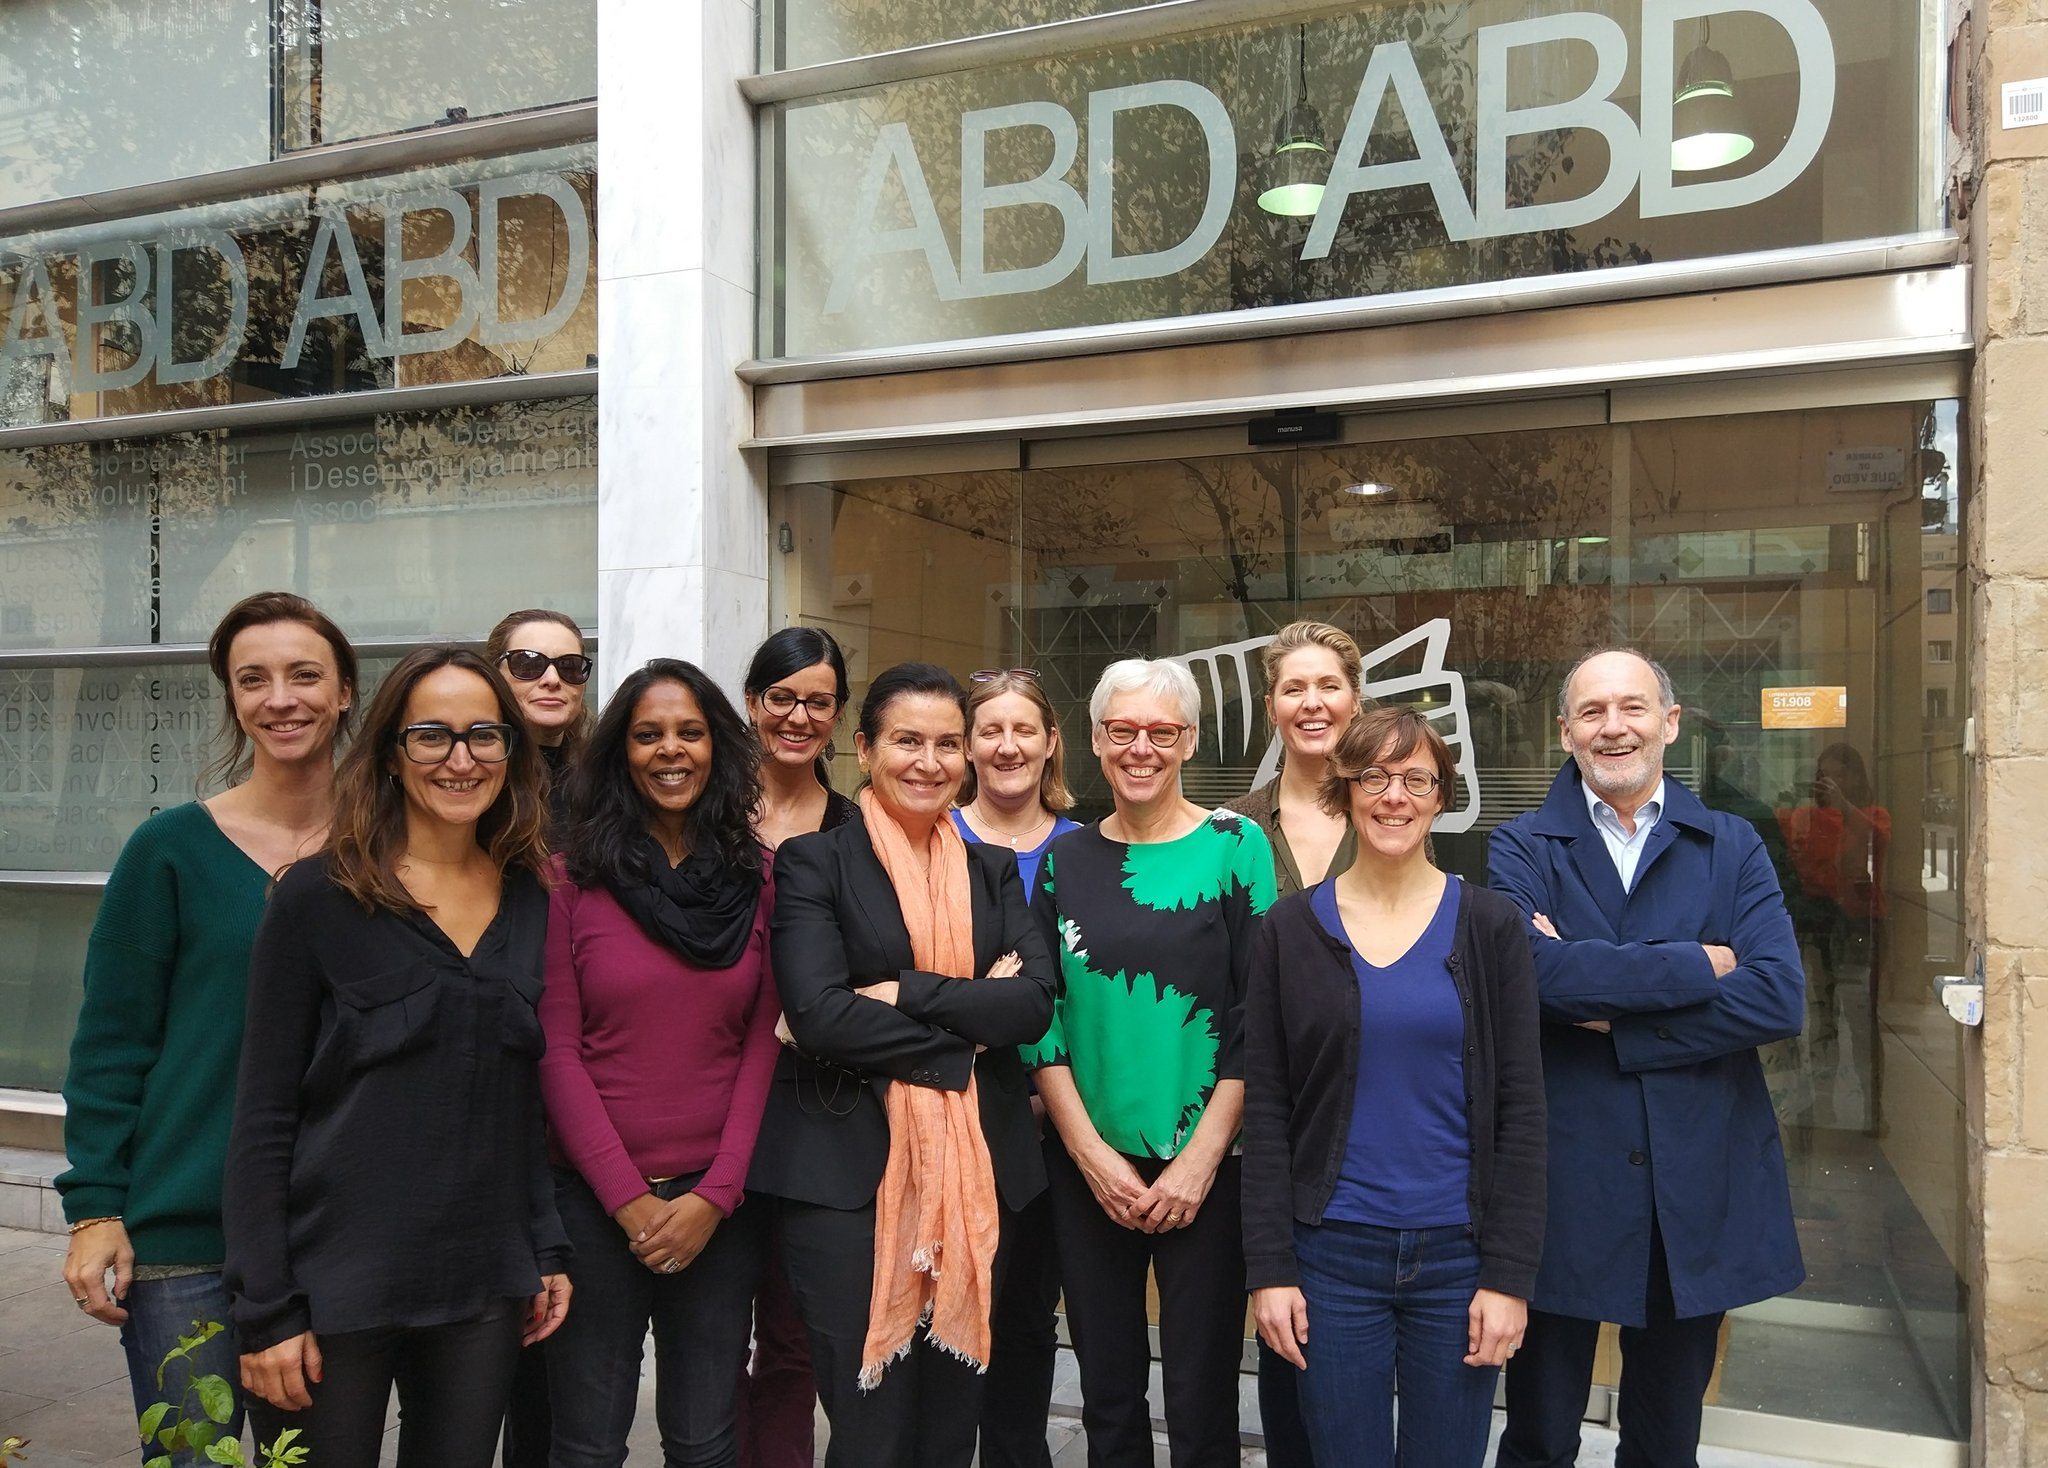 European Project Social Economy For Care Visits ABDs Facilities To Exchange Knowledge With